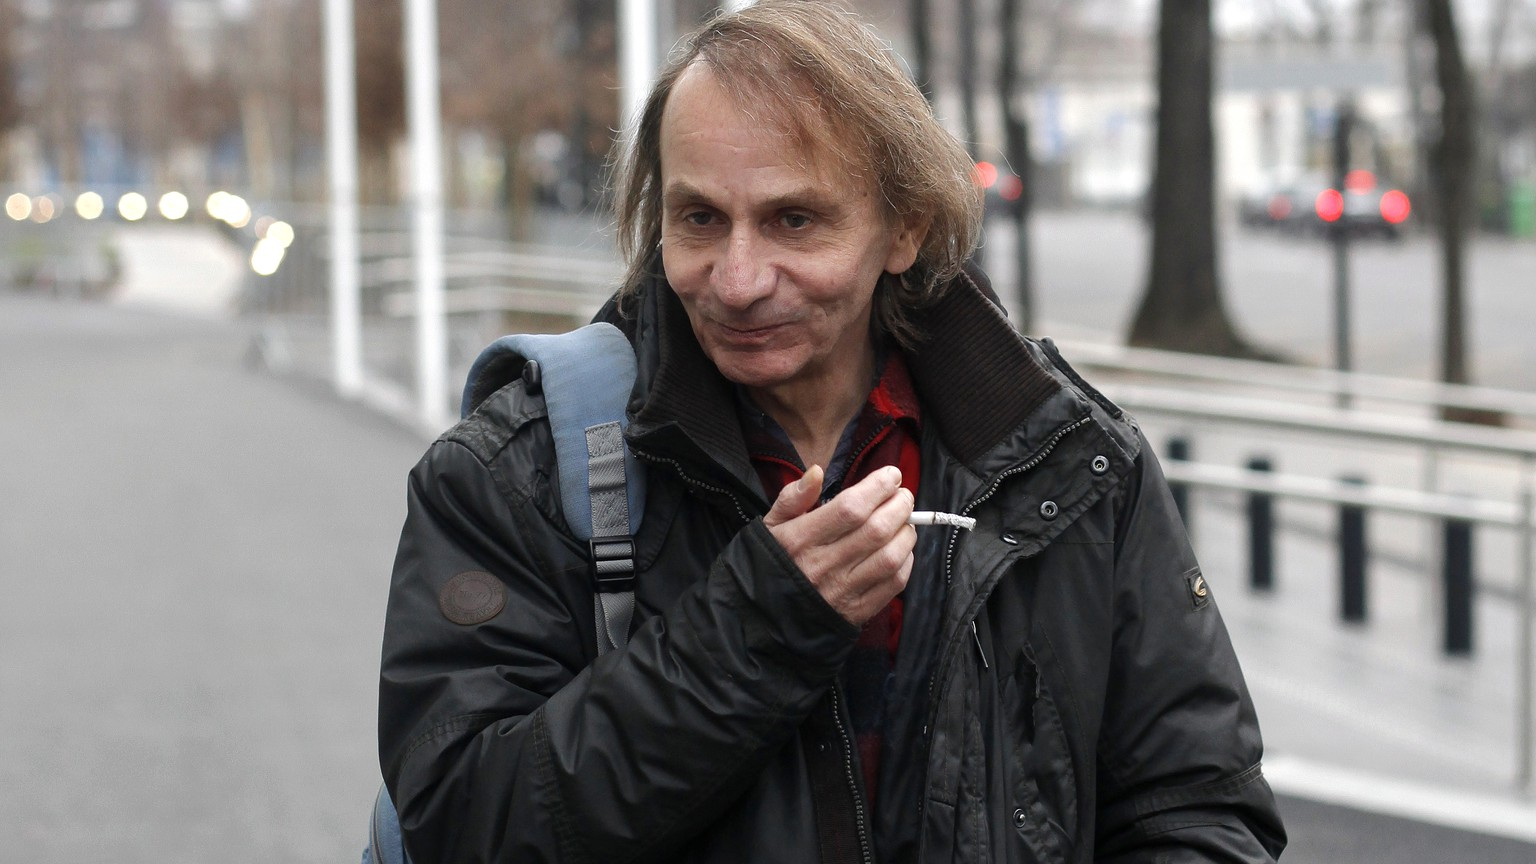 "FOR STORY SLUGGED EU BOOKS HOULLEBECQ SUBMISSION BY GREG KELLER  - This Wednesday, Jan. 7, 2015 photo shows French novelist Michel Houellebecq after an interview on radio station France Inter, in Paris. The latest novel by Michel Houellebecq, the bad boy of French letters, has been called everything from an Islamophobic rant to a ""French literary suicide."" Imagining the election of a Muslim president in France, ""Submission"" struck a raw nerve when it came out this year on the same day as the Charlie Hebdo attacks in Paris. (AP Photo/Thibault Camus)"